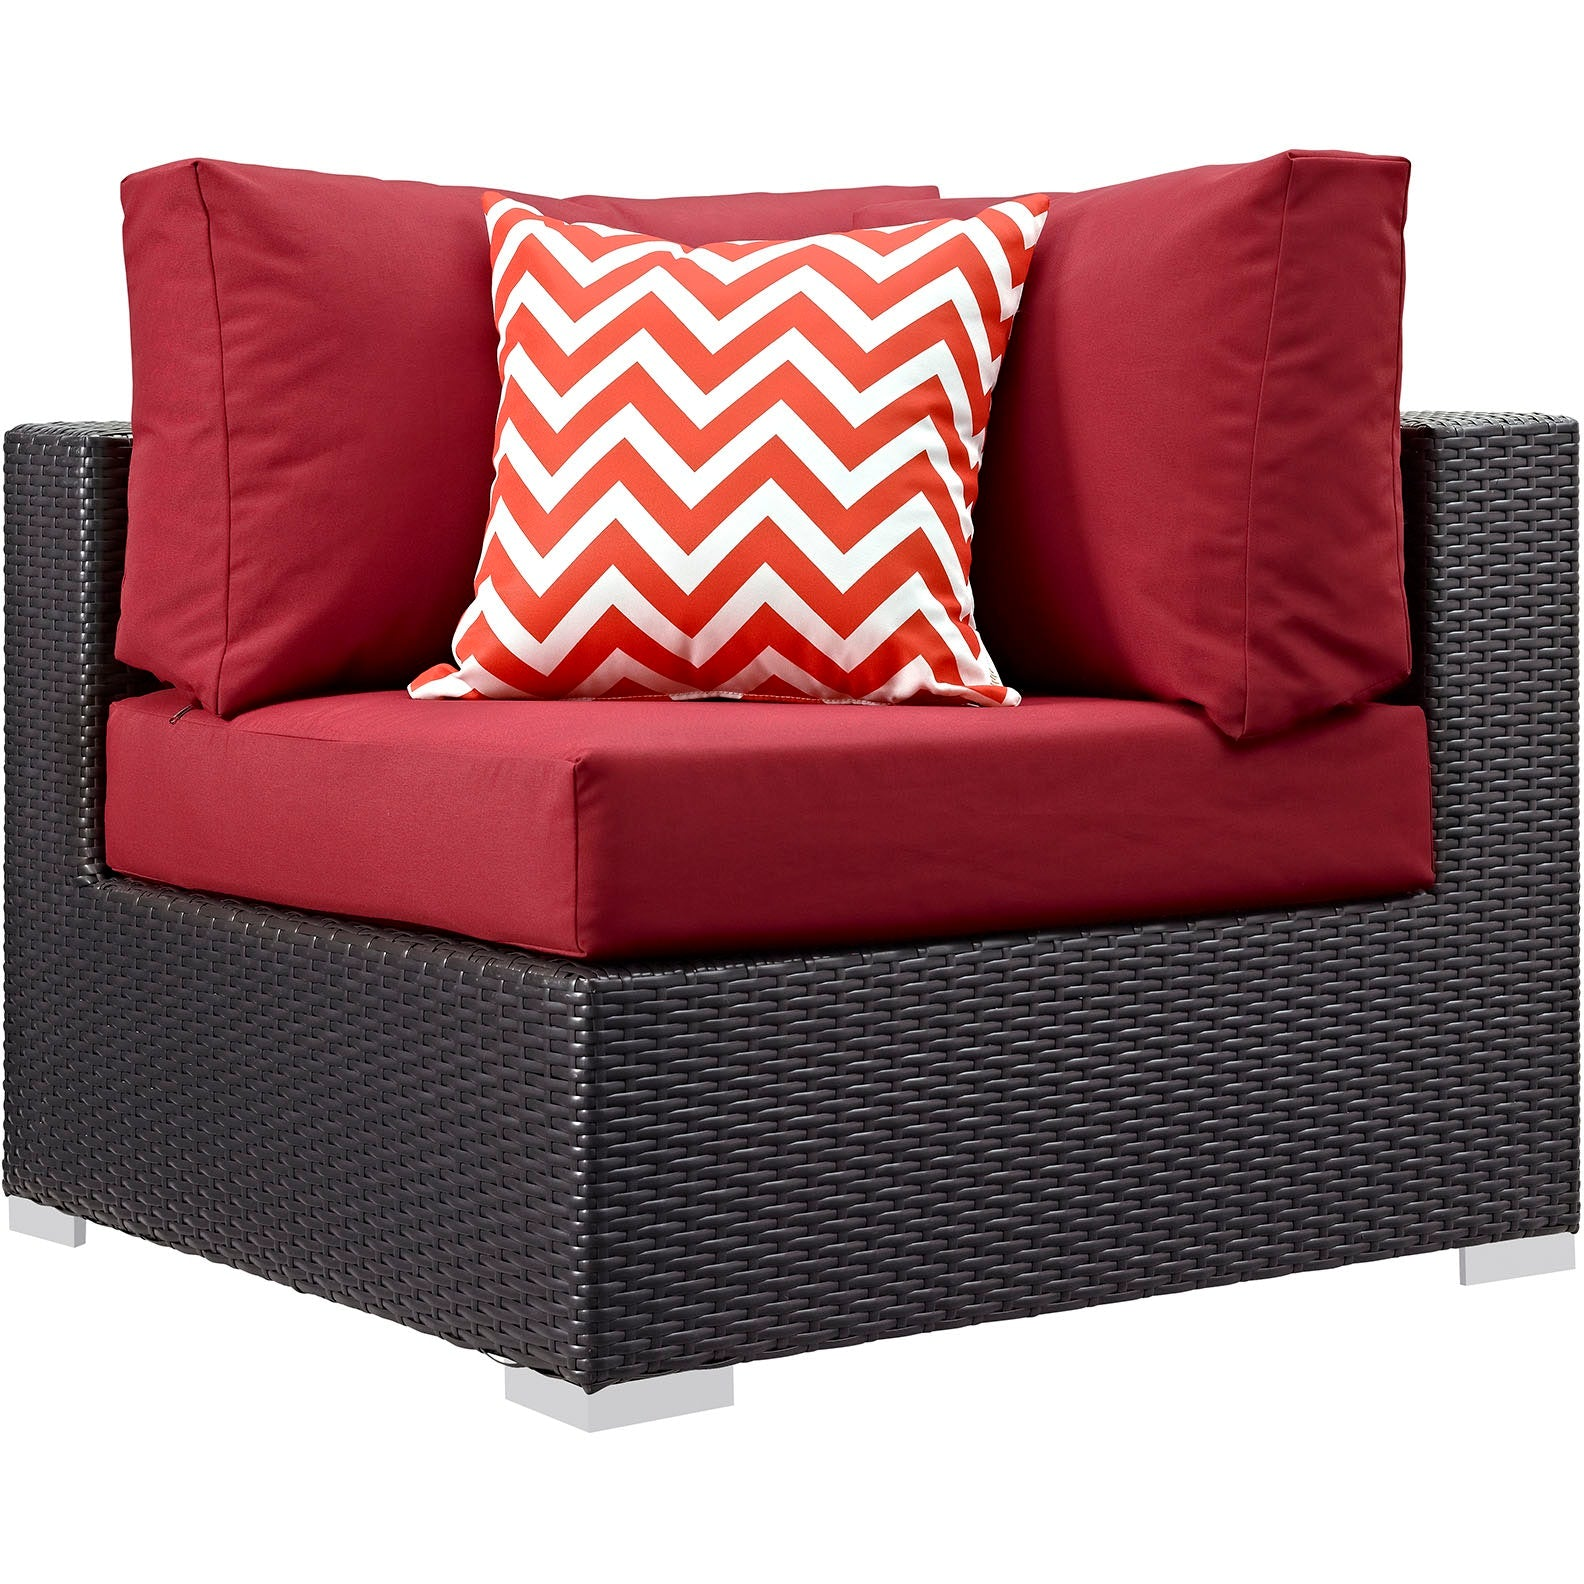 Convene 7 Piece Outdoor Patio Sectional Set - Expresso Red